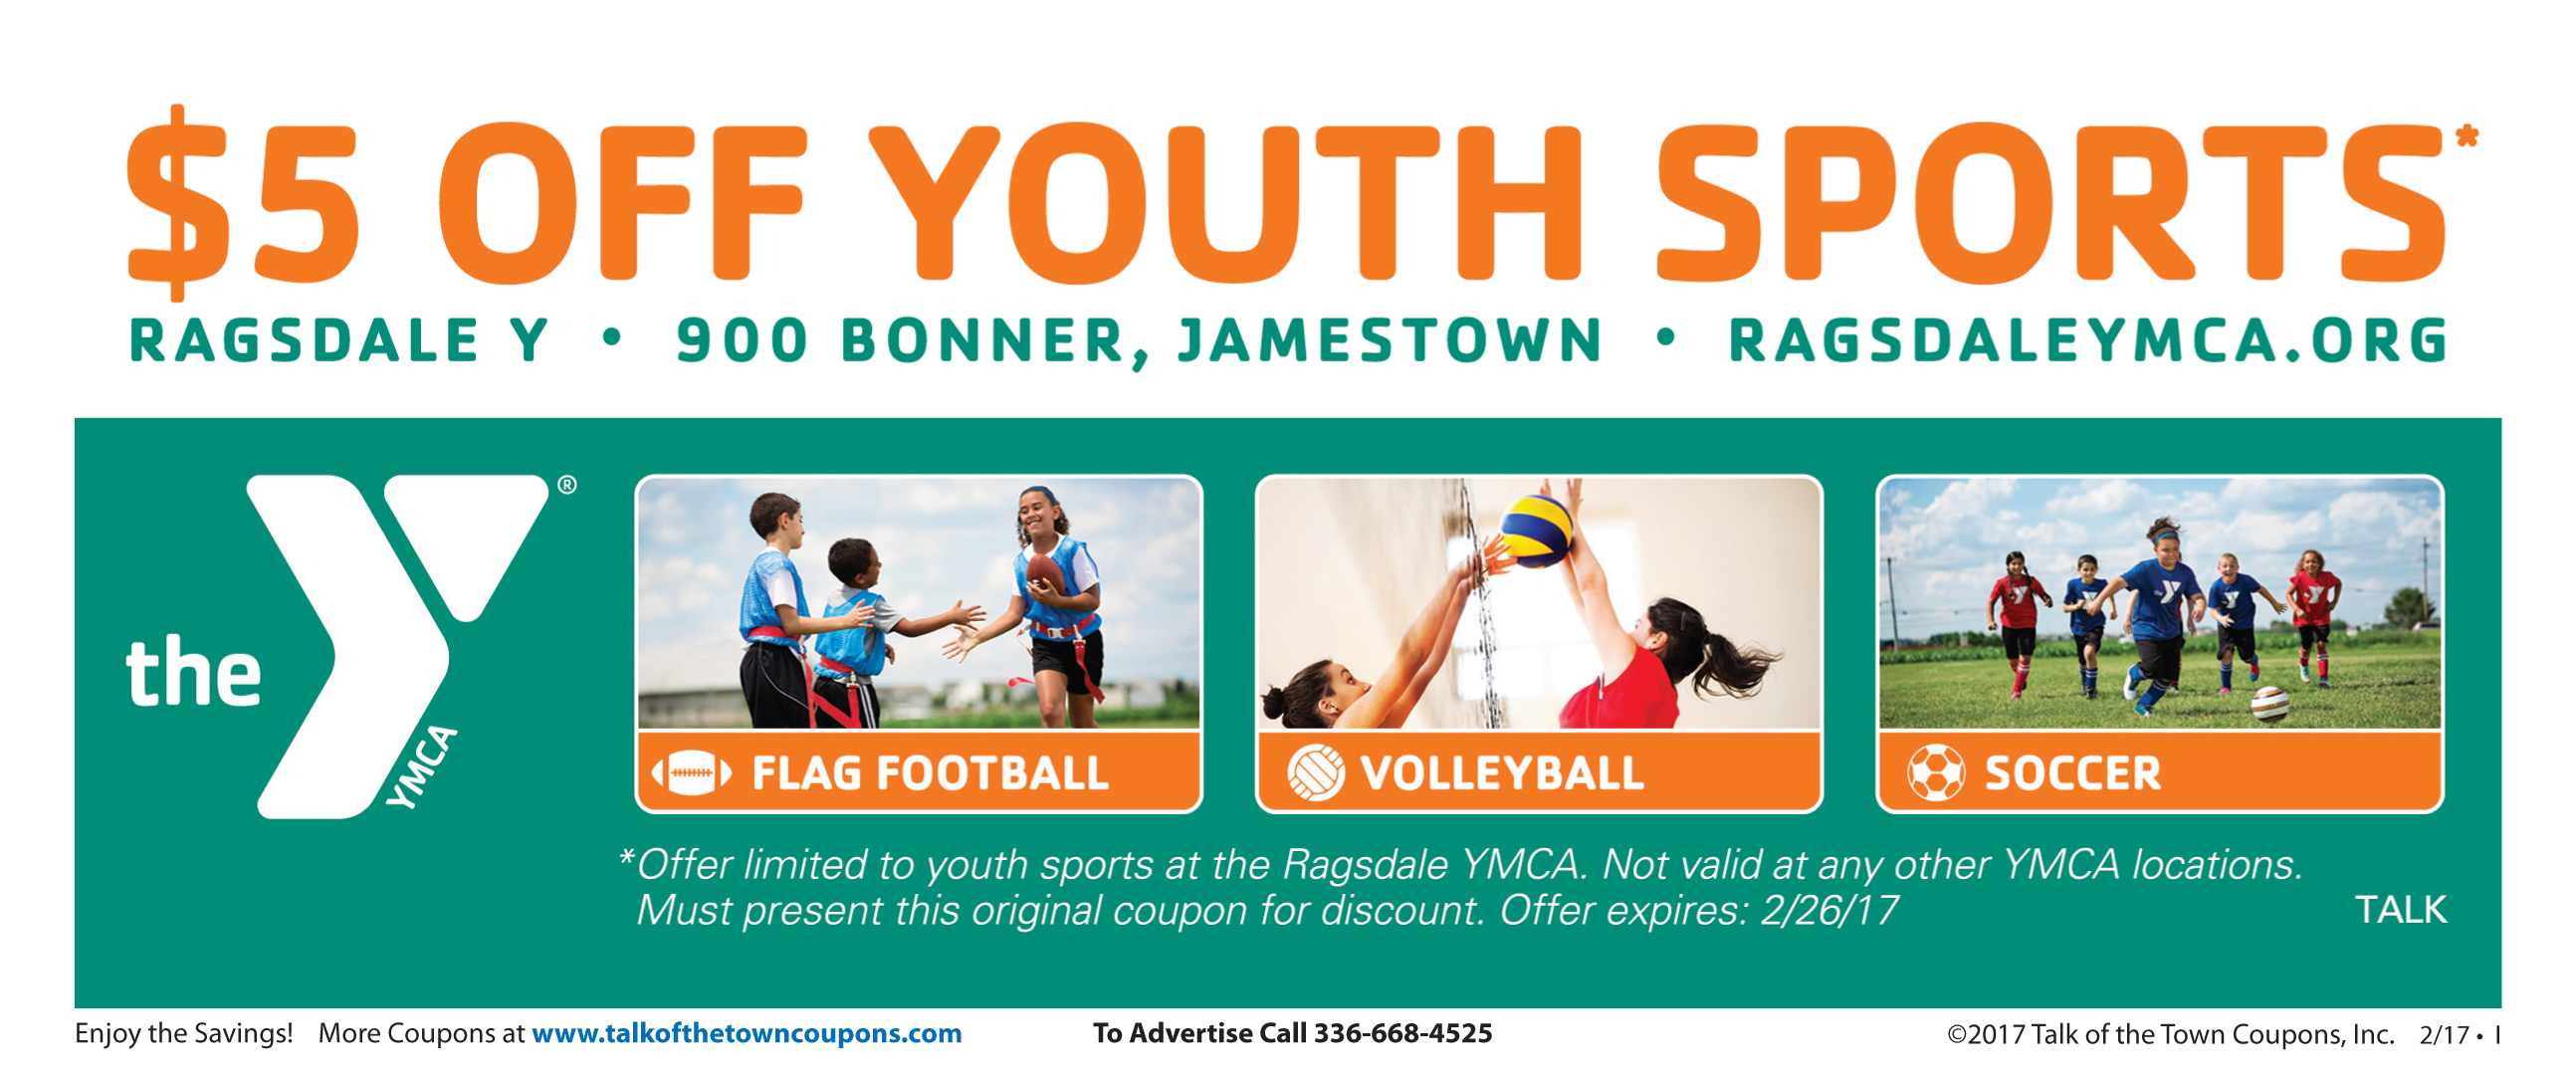 YMCA ACBooklet Offer Coupon image